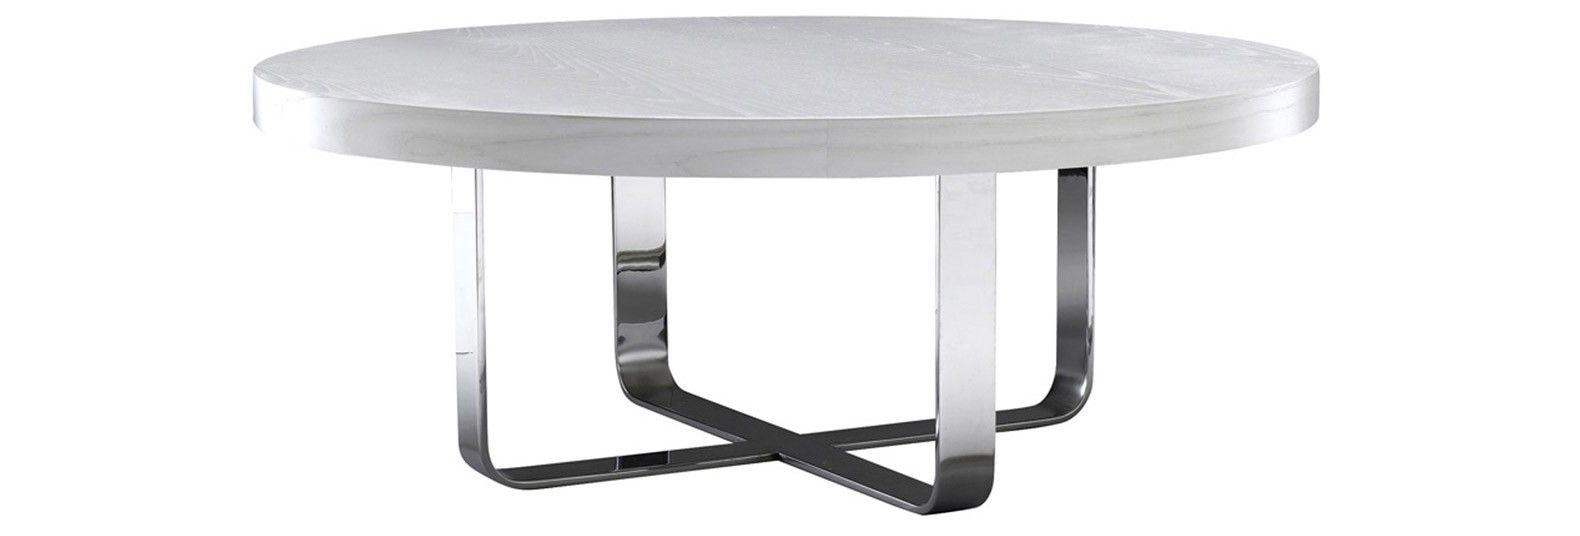 Soho Cocktail Table By Desiron Shown In White Ash Polished